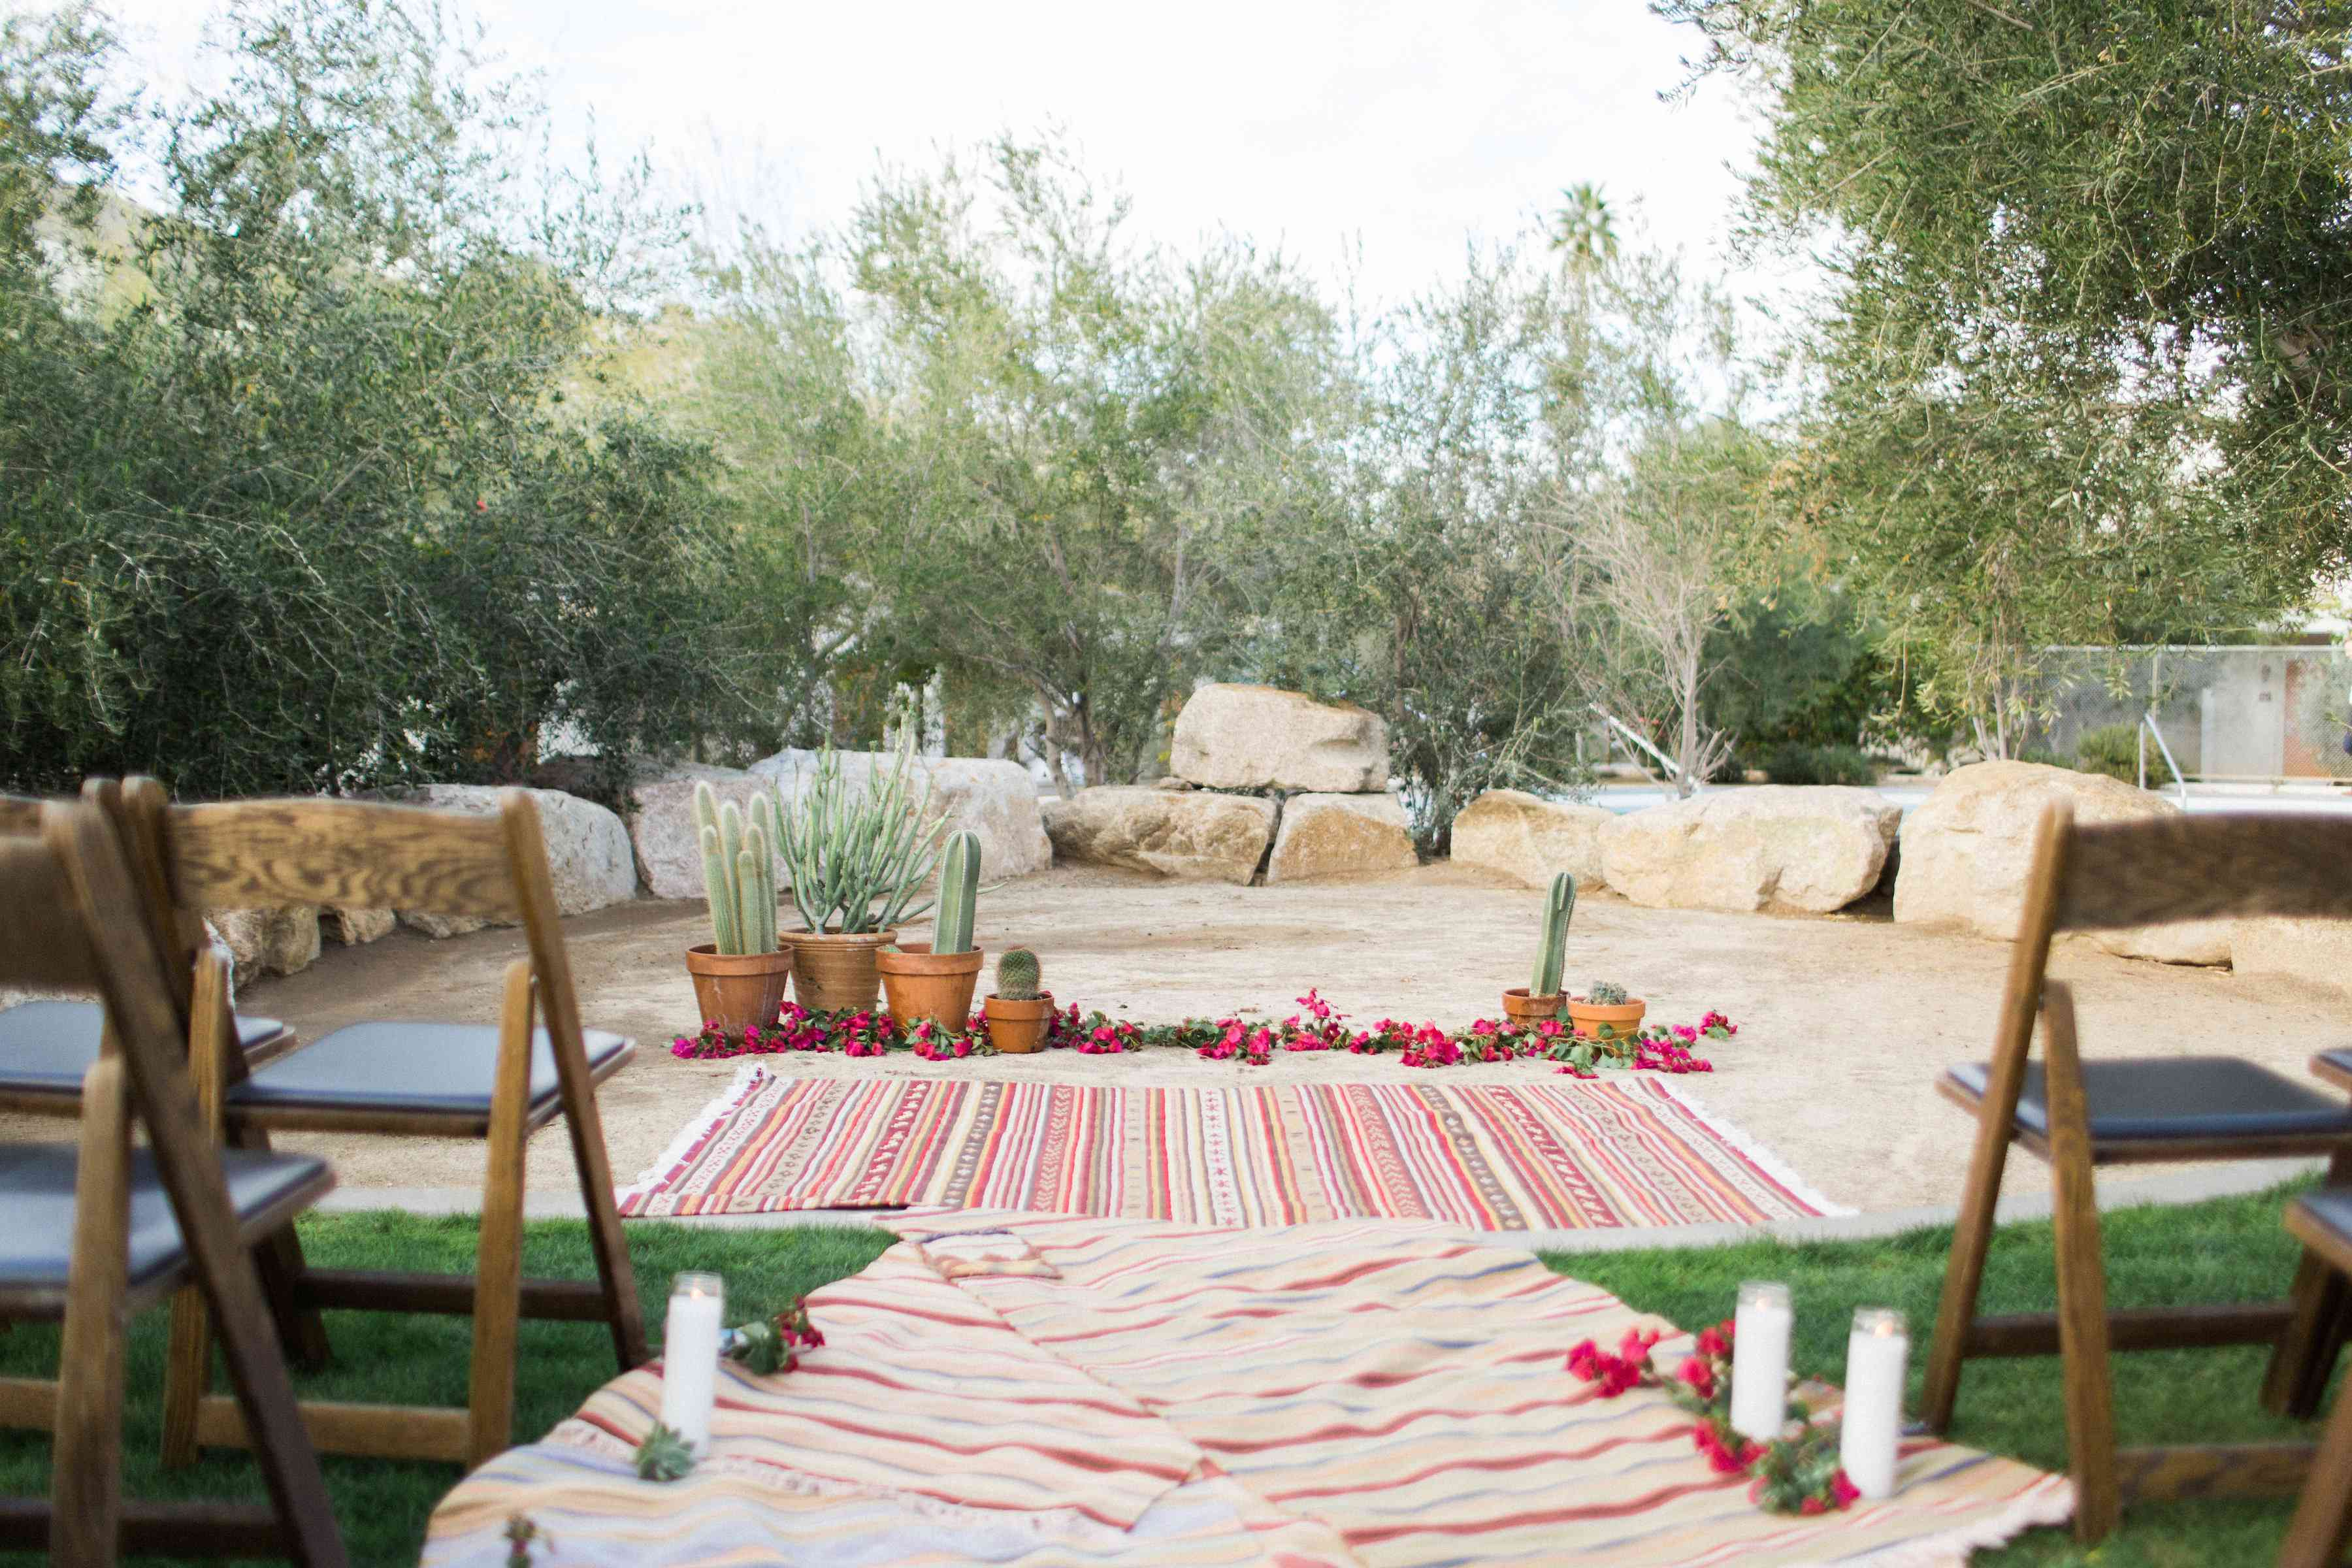 Wedding ceremony with rugs down the aisle and a rug with flowers and cacti at the end